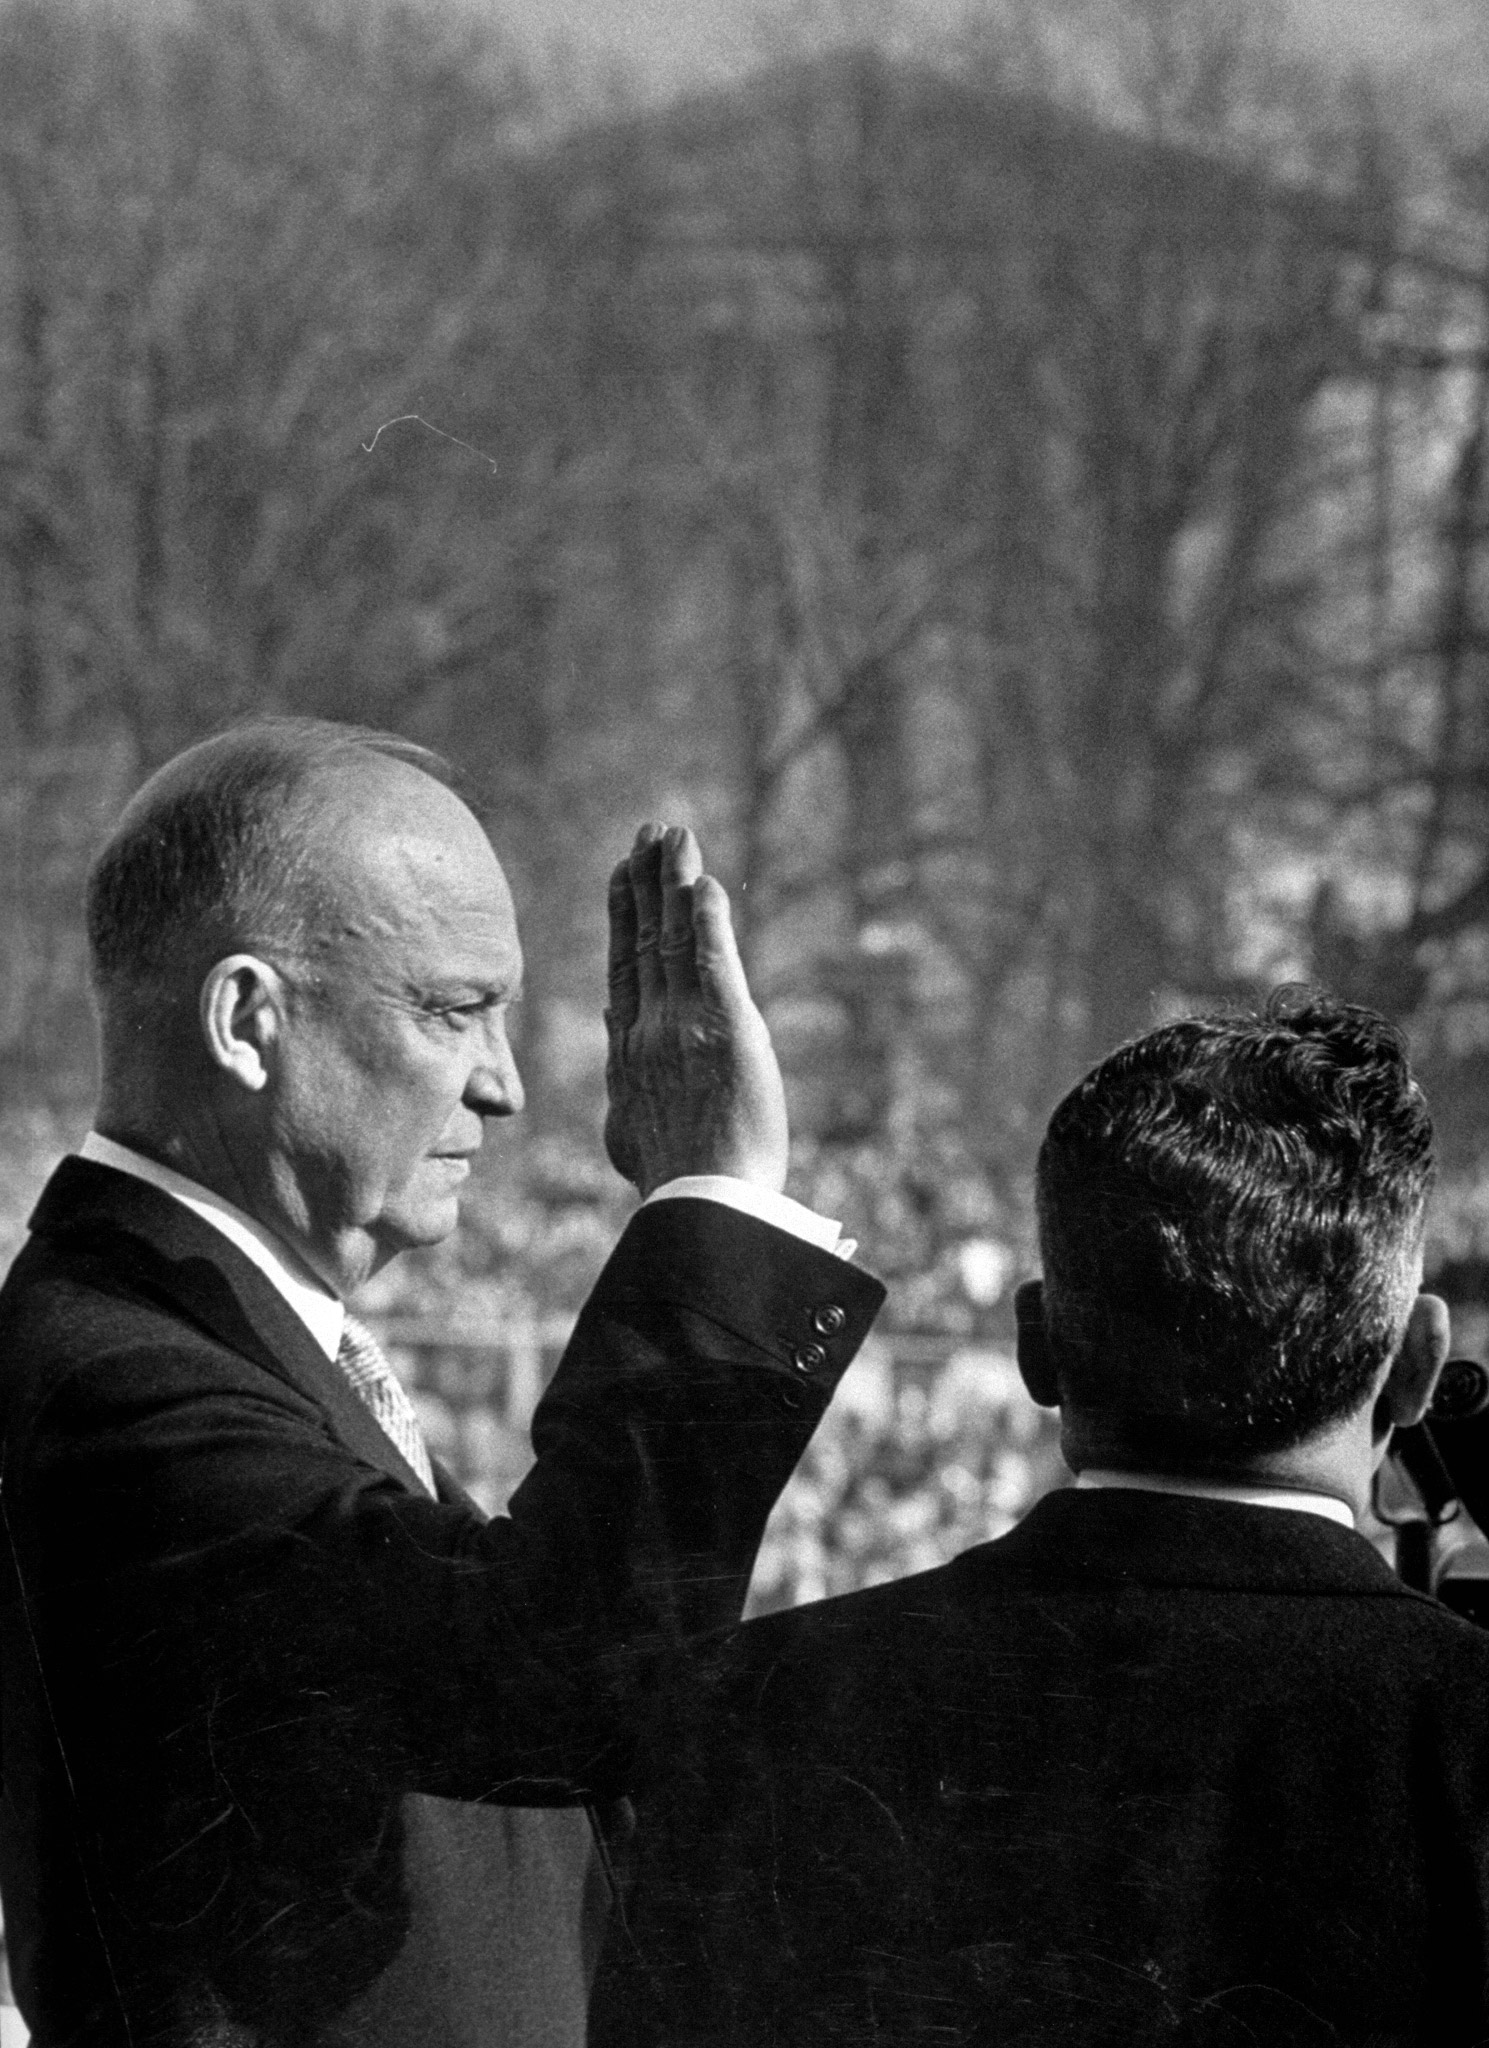 Dwight D. Eisenhower taking his first oath of office during inauguration, 1953.